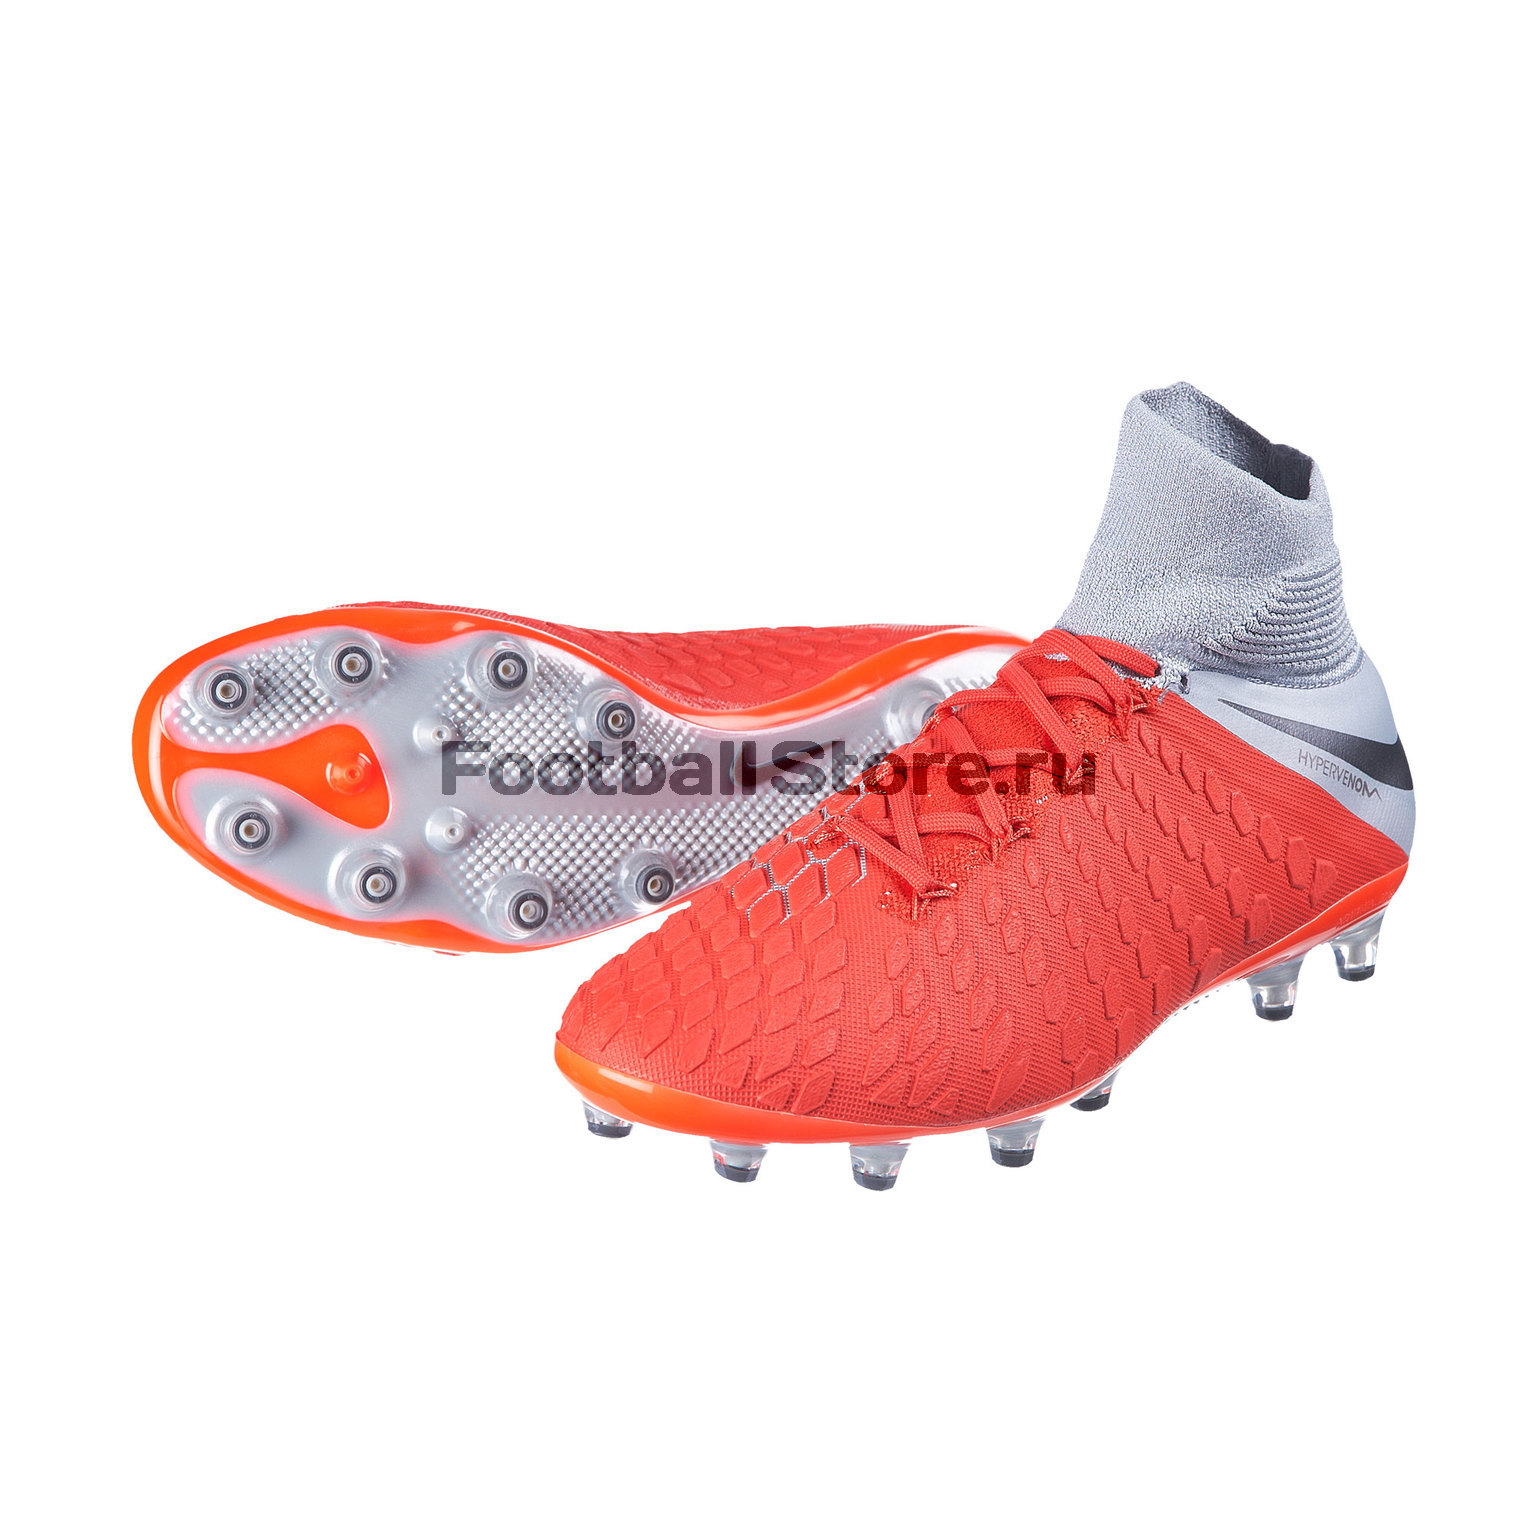 Бутсы Nike Hypervenom 3 Elite DF AG-Pro AJ3819-600 бутсы nike шиповки nike jr tiempox legend vi tf 819191 018